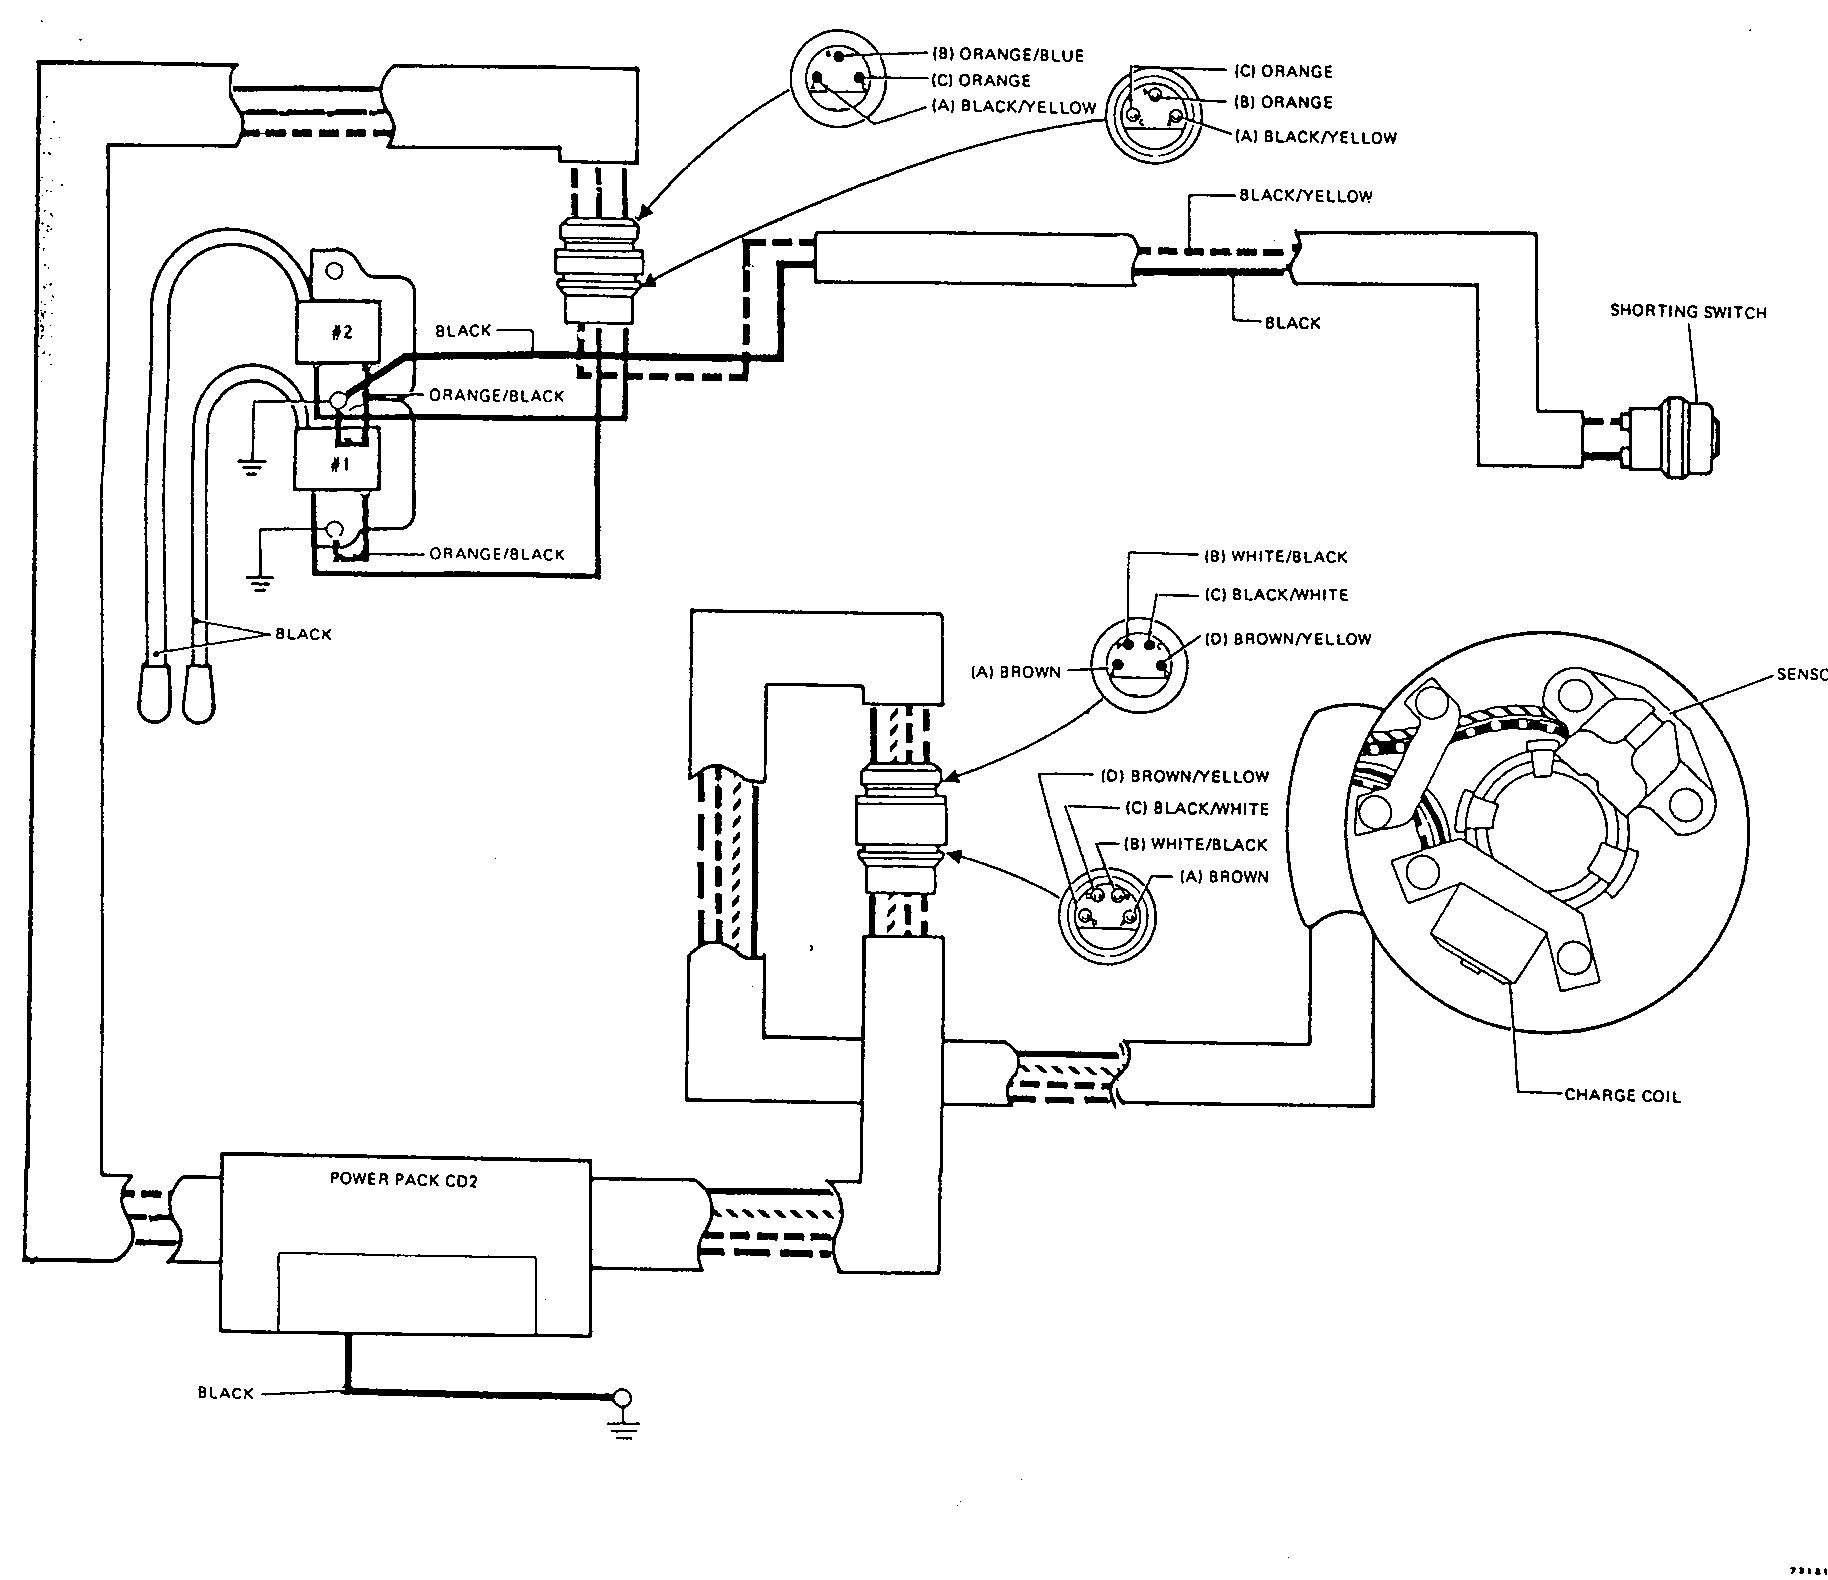 Starter Drawing At Free For Personal Use Valeo Generator Wiring Diagram 1828x1580 Mitsubishi Valid Motor